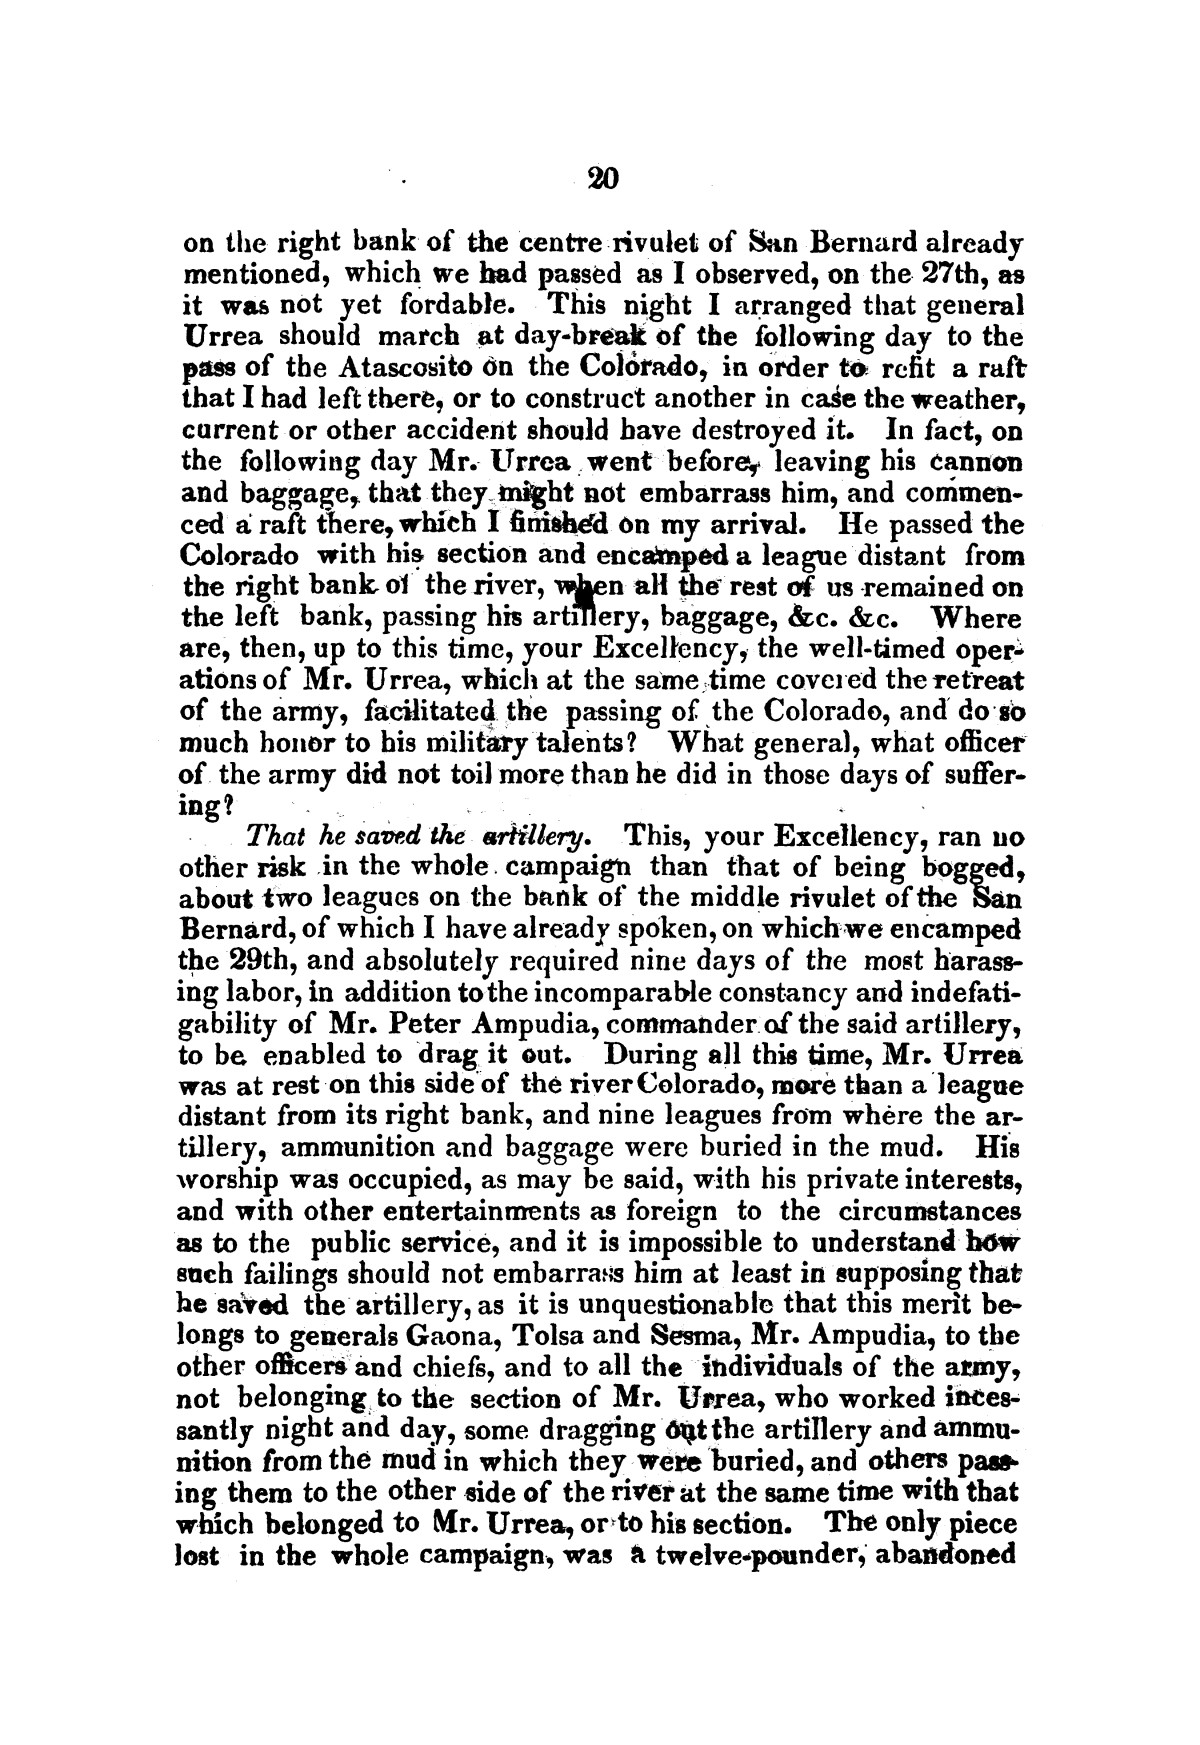 Evacuation of Texas : translation of the Representation addressed to the supreme government / by Vicente Filisola, in defence of his honor, and explanation of his operations as commander-in-chief of the army against Texas.                                                                                                      [Sequence #]: 23 of 72